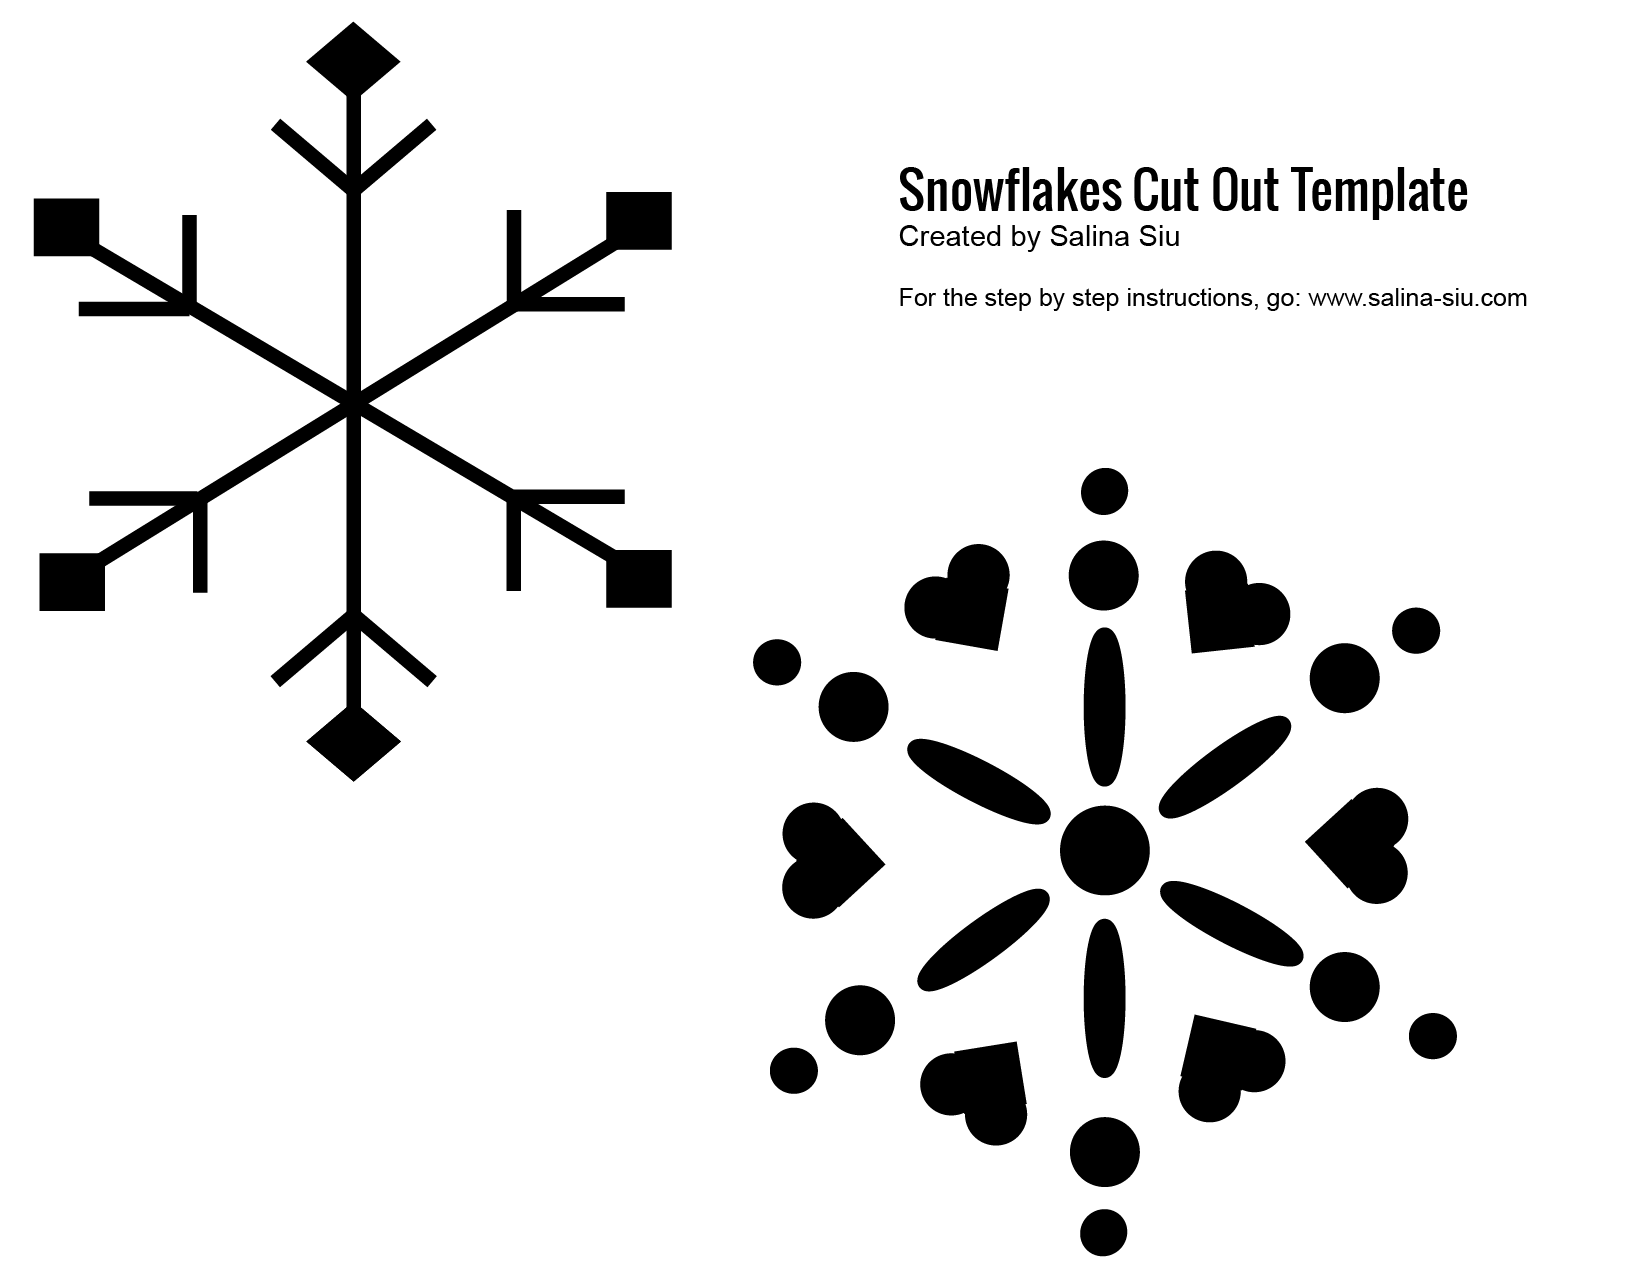 Free snowflake patterns clipart jpg free stock paper snowflakes template free download. free snowflake template ... jpg free stock